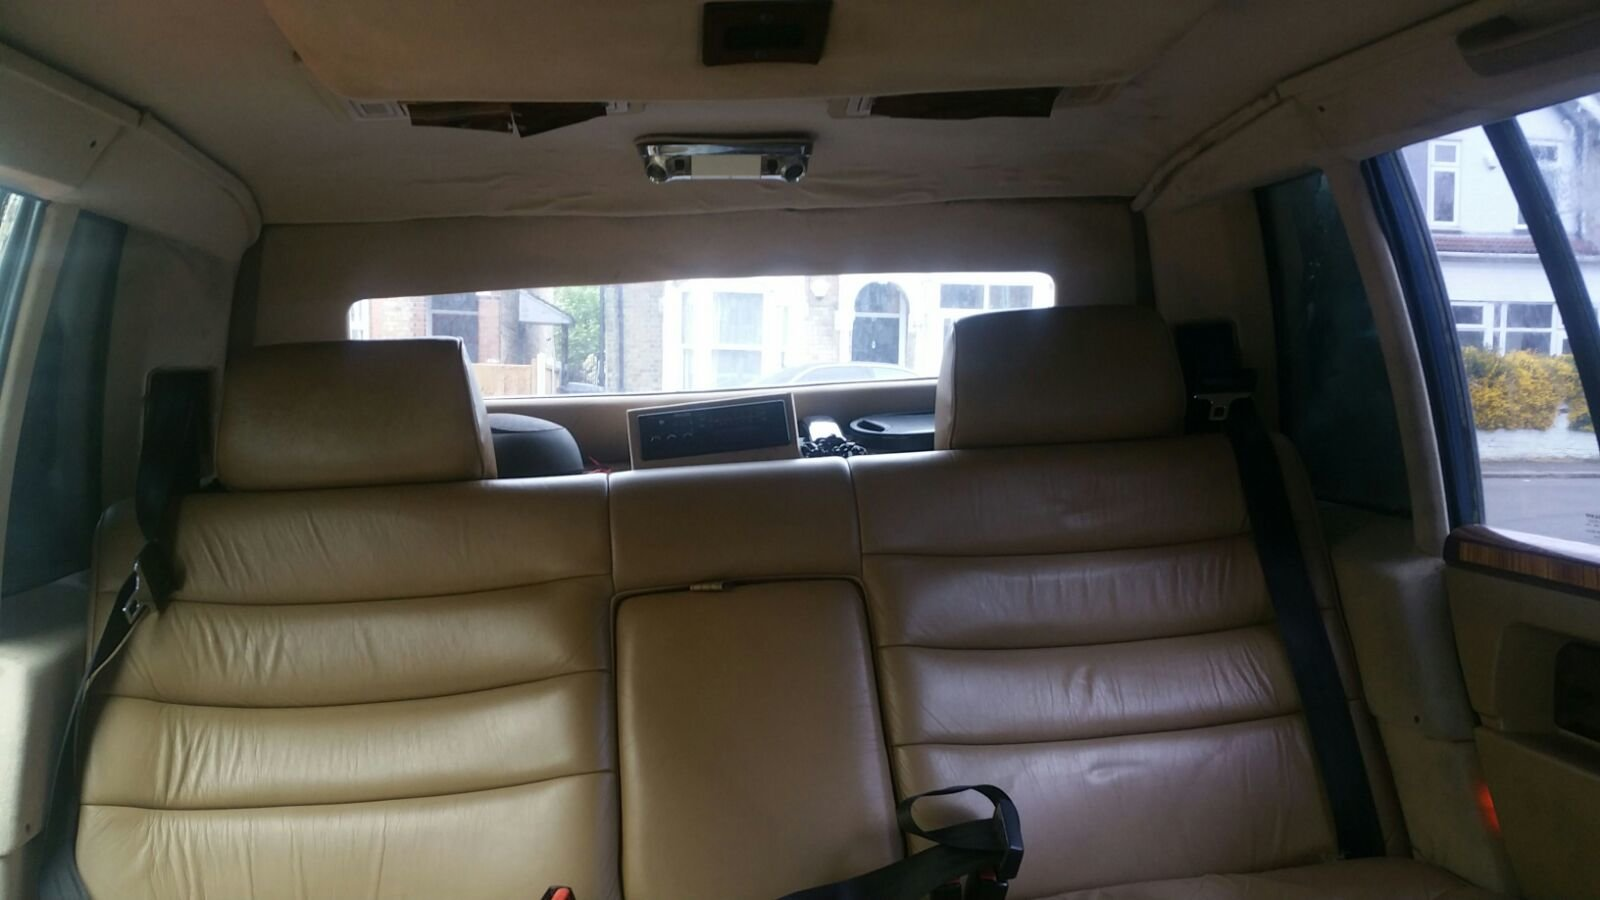 1989 volvo limousine NOT 6 DOORS extremely  rare  For Sale (picture 4 of 6)